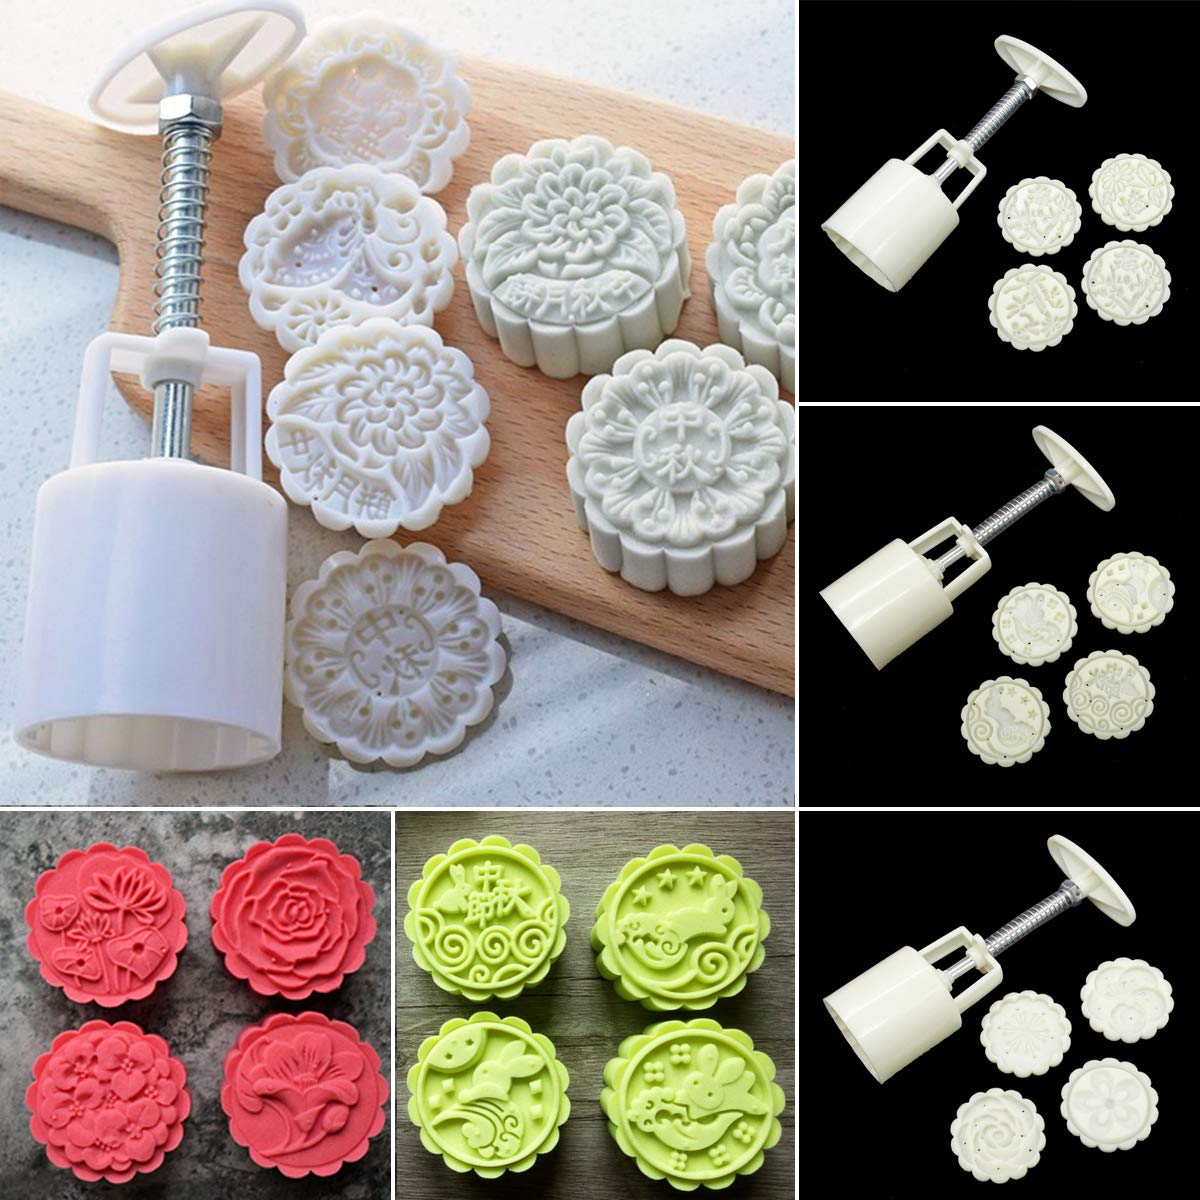 1 Chinese Style Mooncake Mold 5Pcs//Set 4 Flower Round Stamps Plunger Dough Press Baking Mould DIY Pastry Cake Decorating Tools Katoot